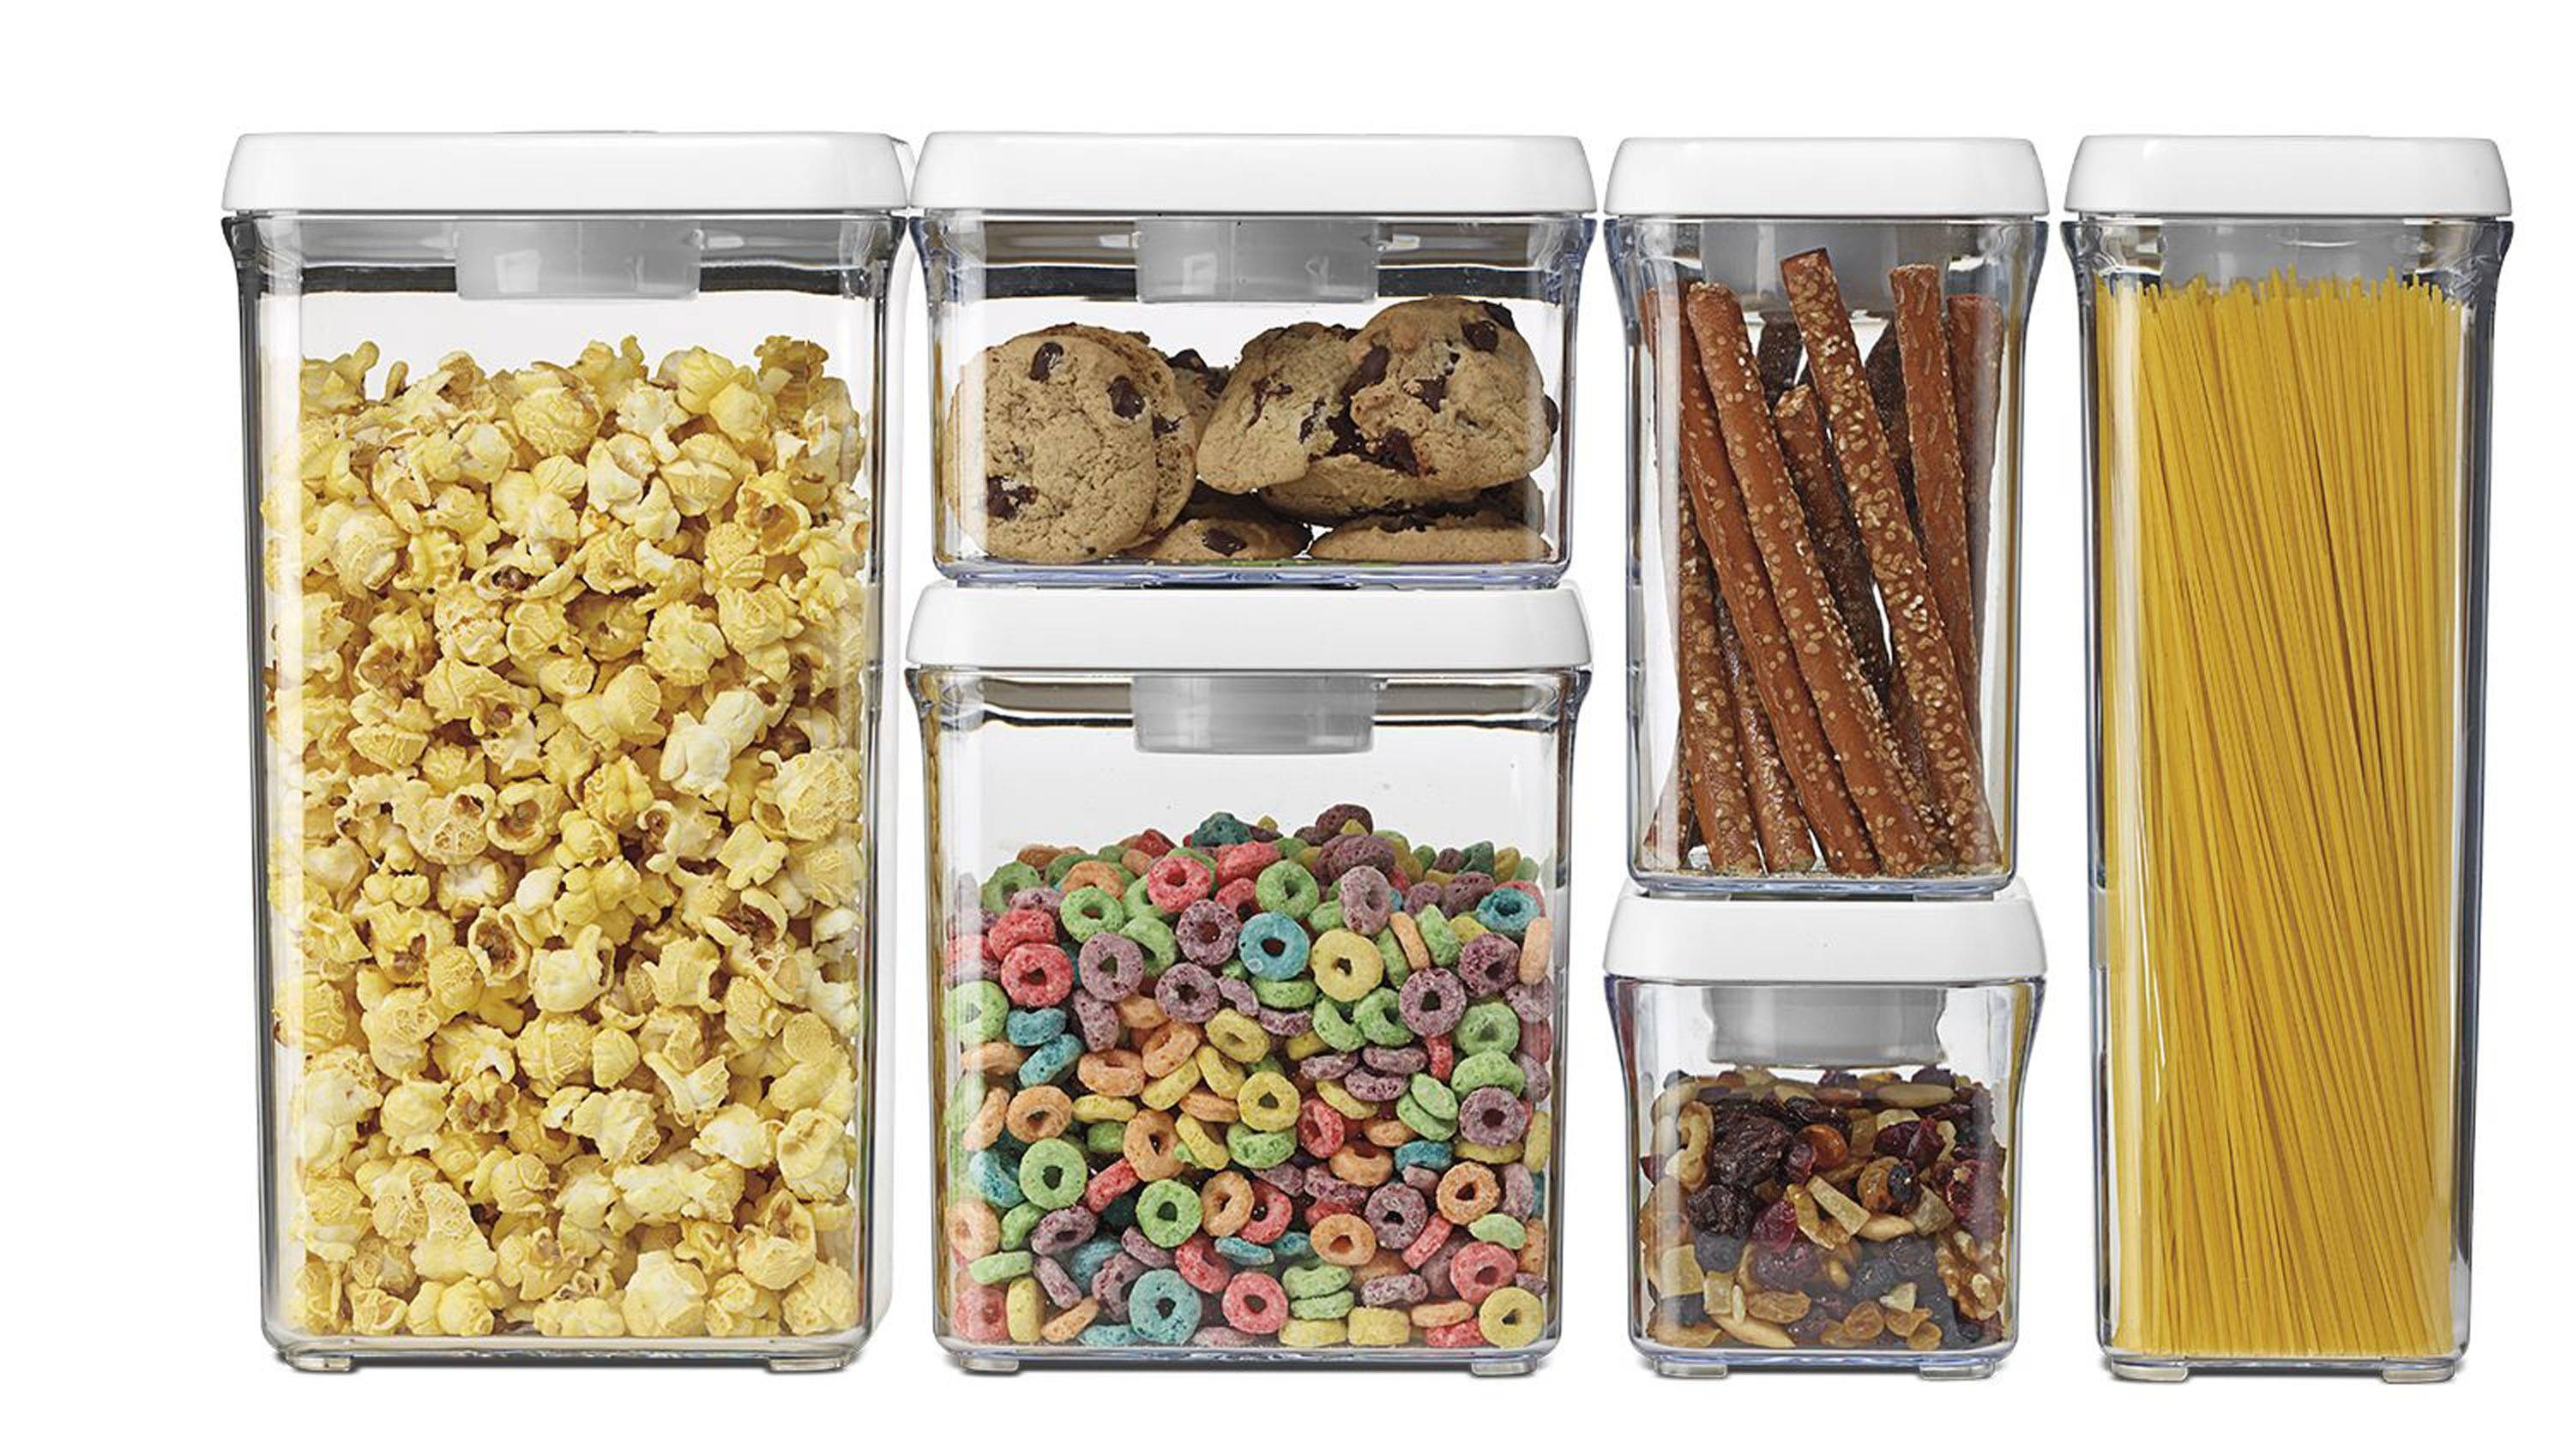 When you buy in bulk, you'll need plastic storage containers with airtight sealable lids.